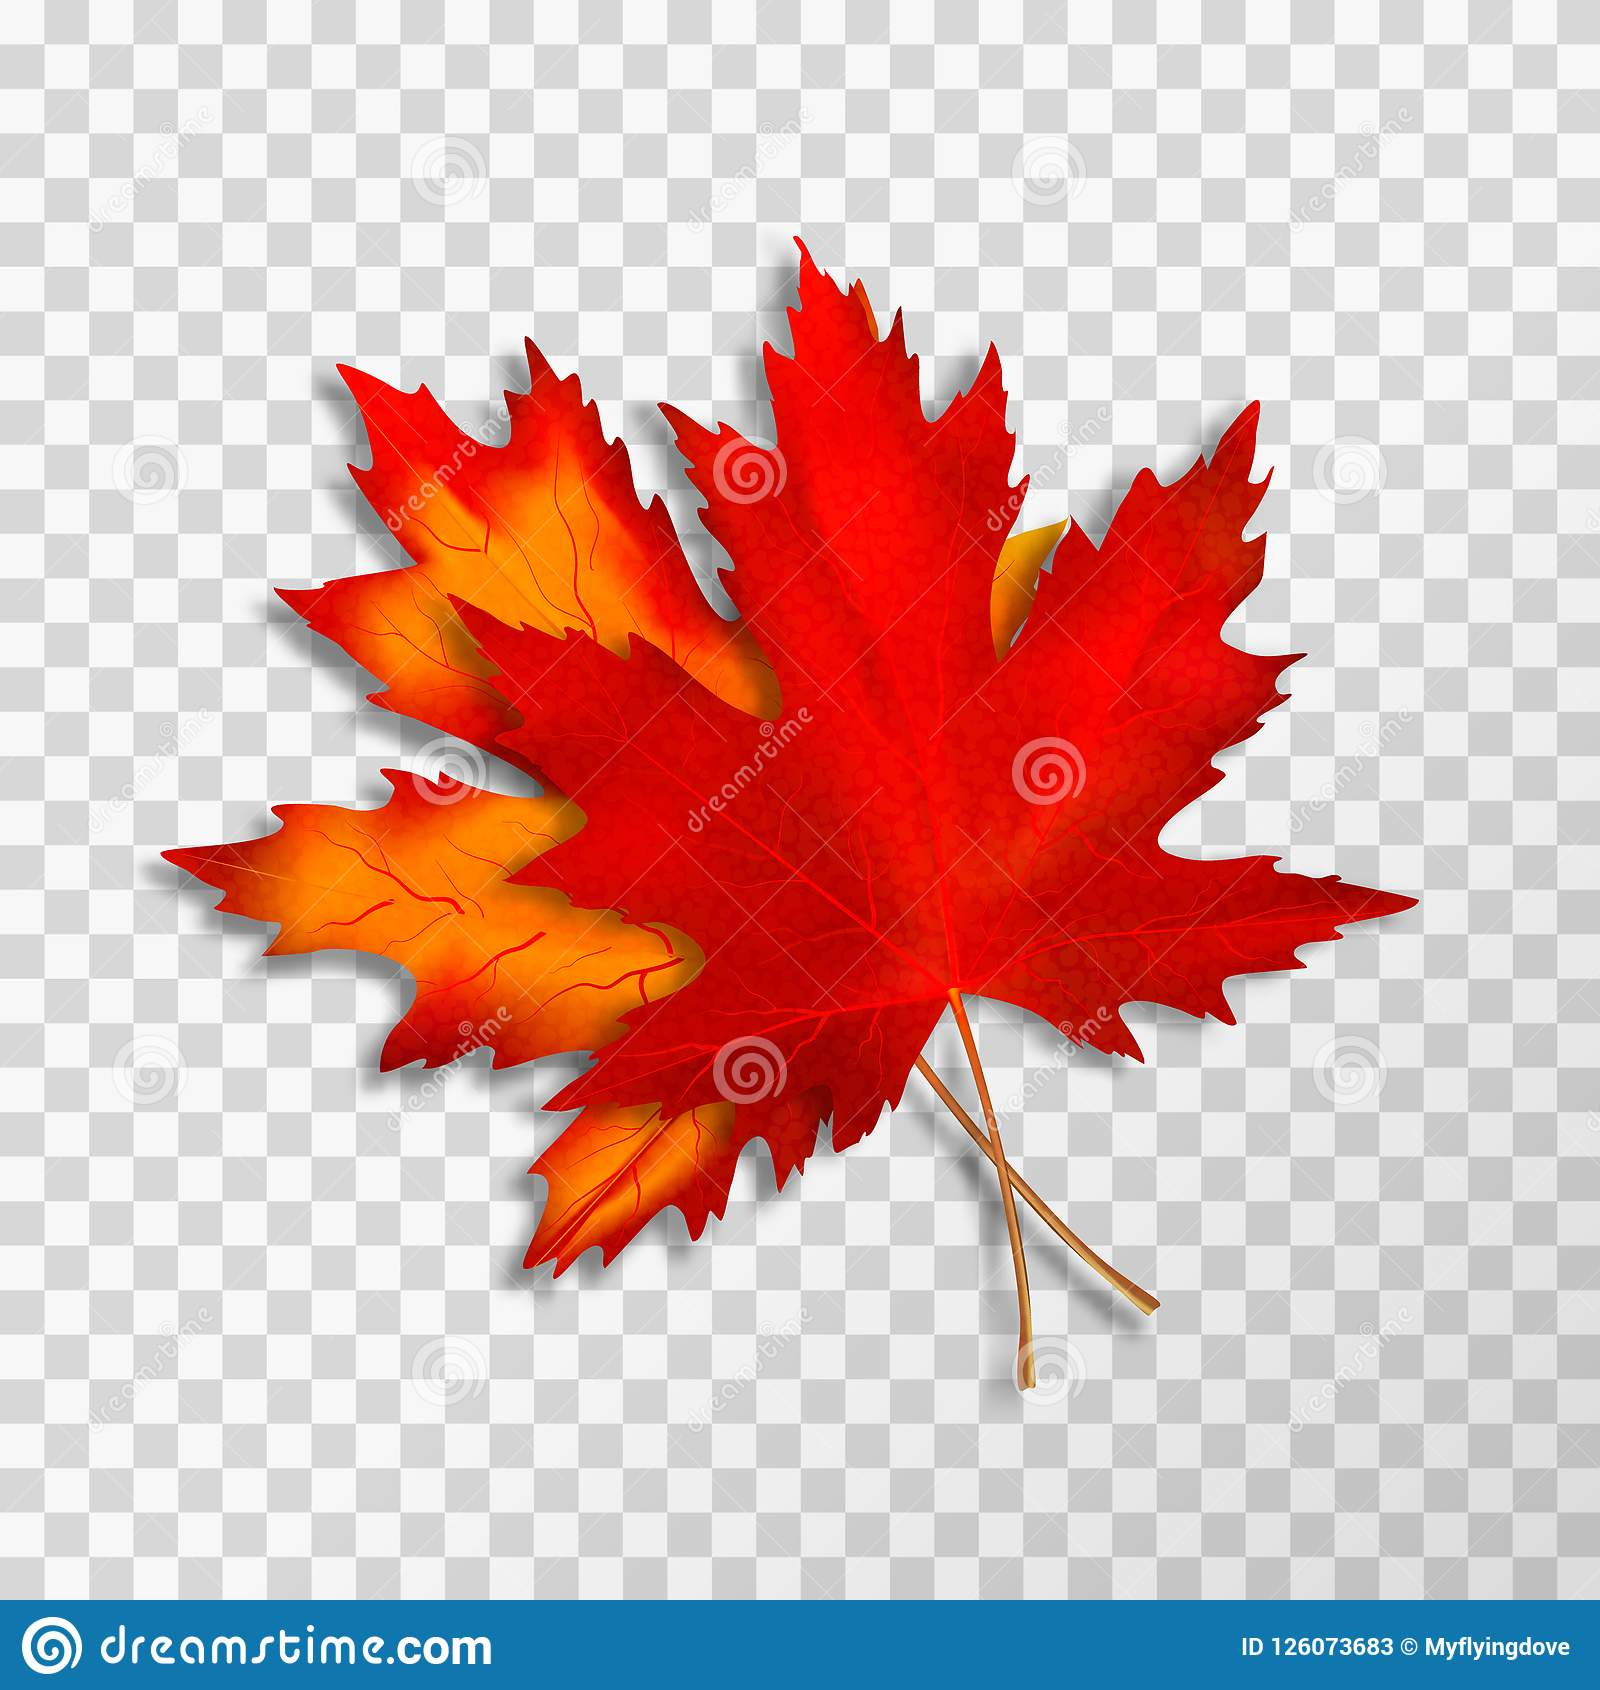 Two Maple Leaves Isolated On Transparent Background Bright Red Autumn Realistic Leaves Vector Illustration Eps 10 Stock Illustration Illustration Of Herbarium Leaves 126073683